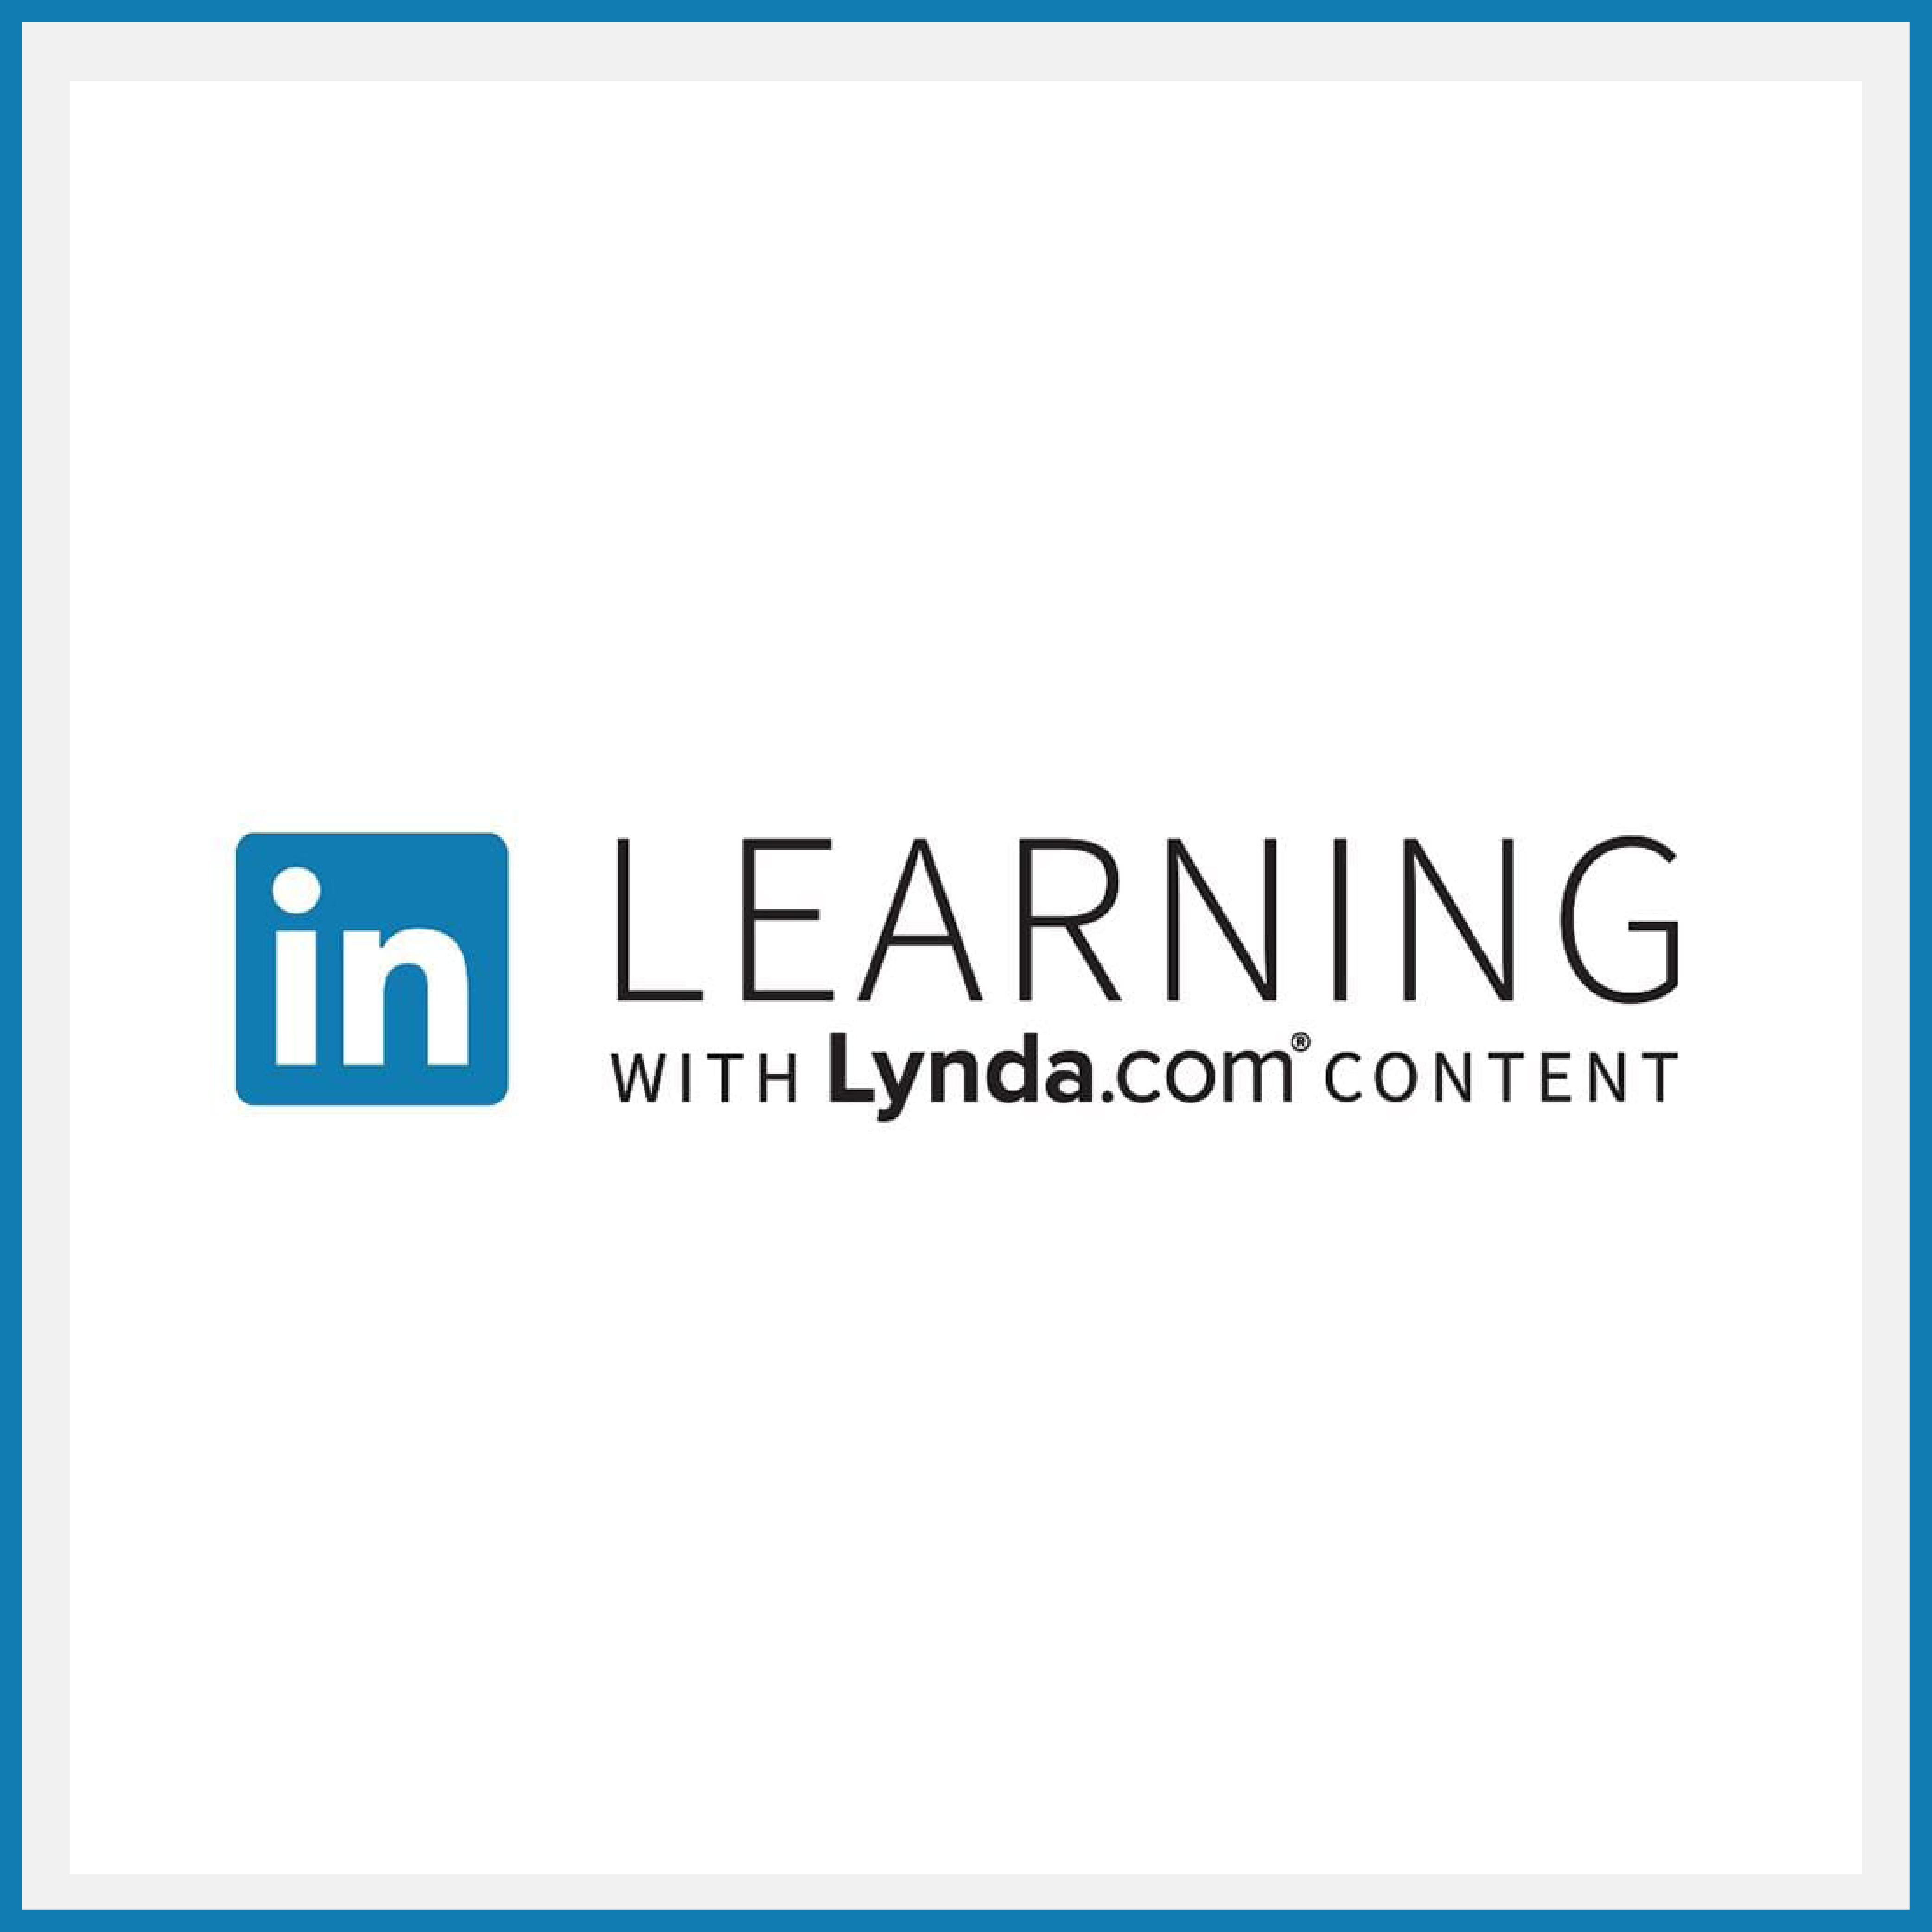 LinkedIn and Lynda have combined to provide personalized and professional learning